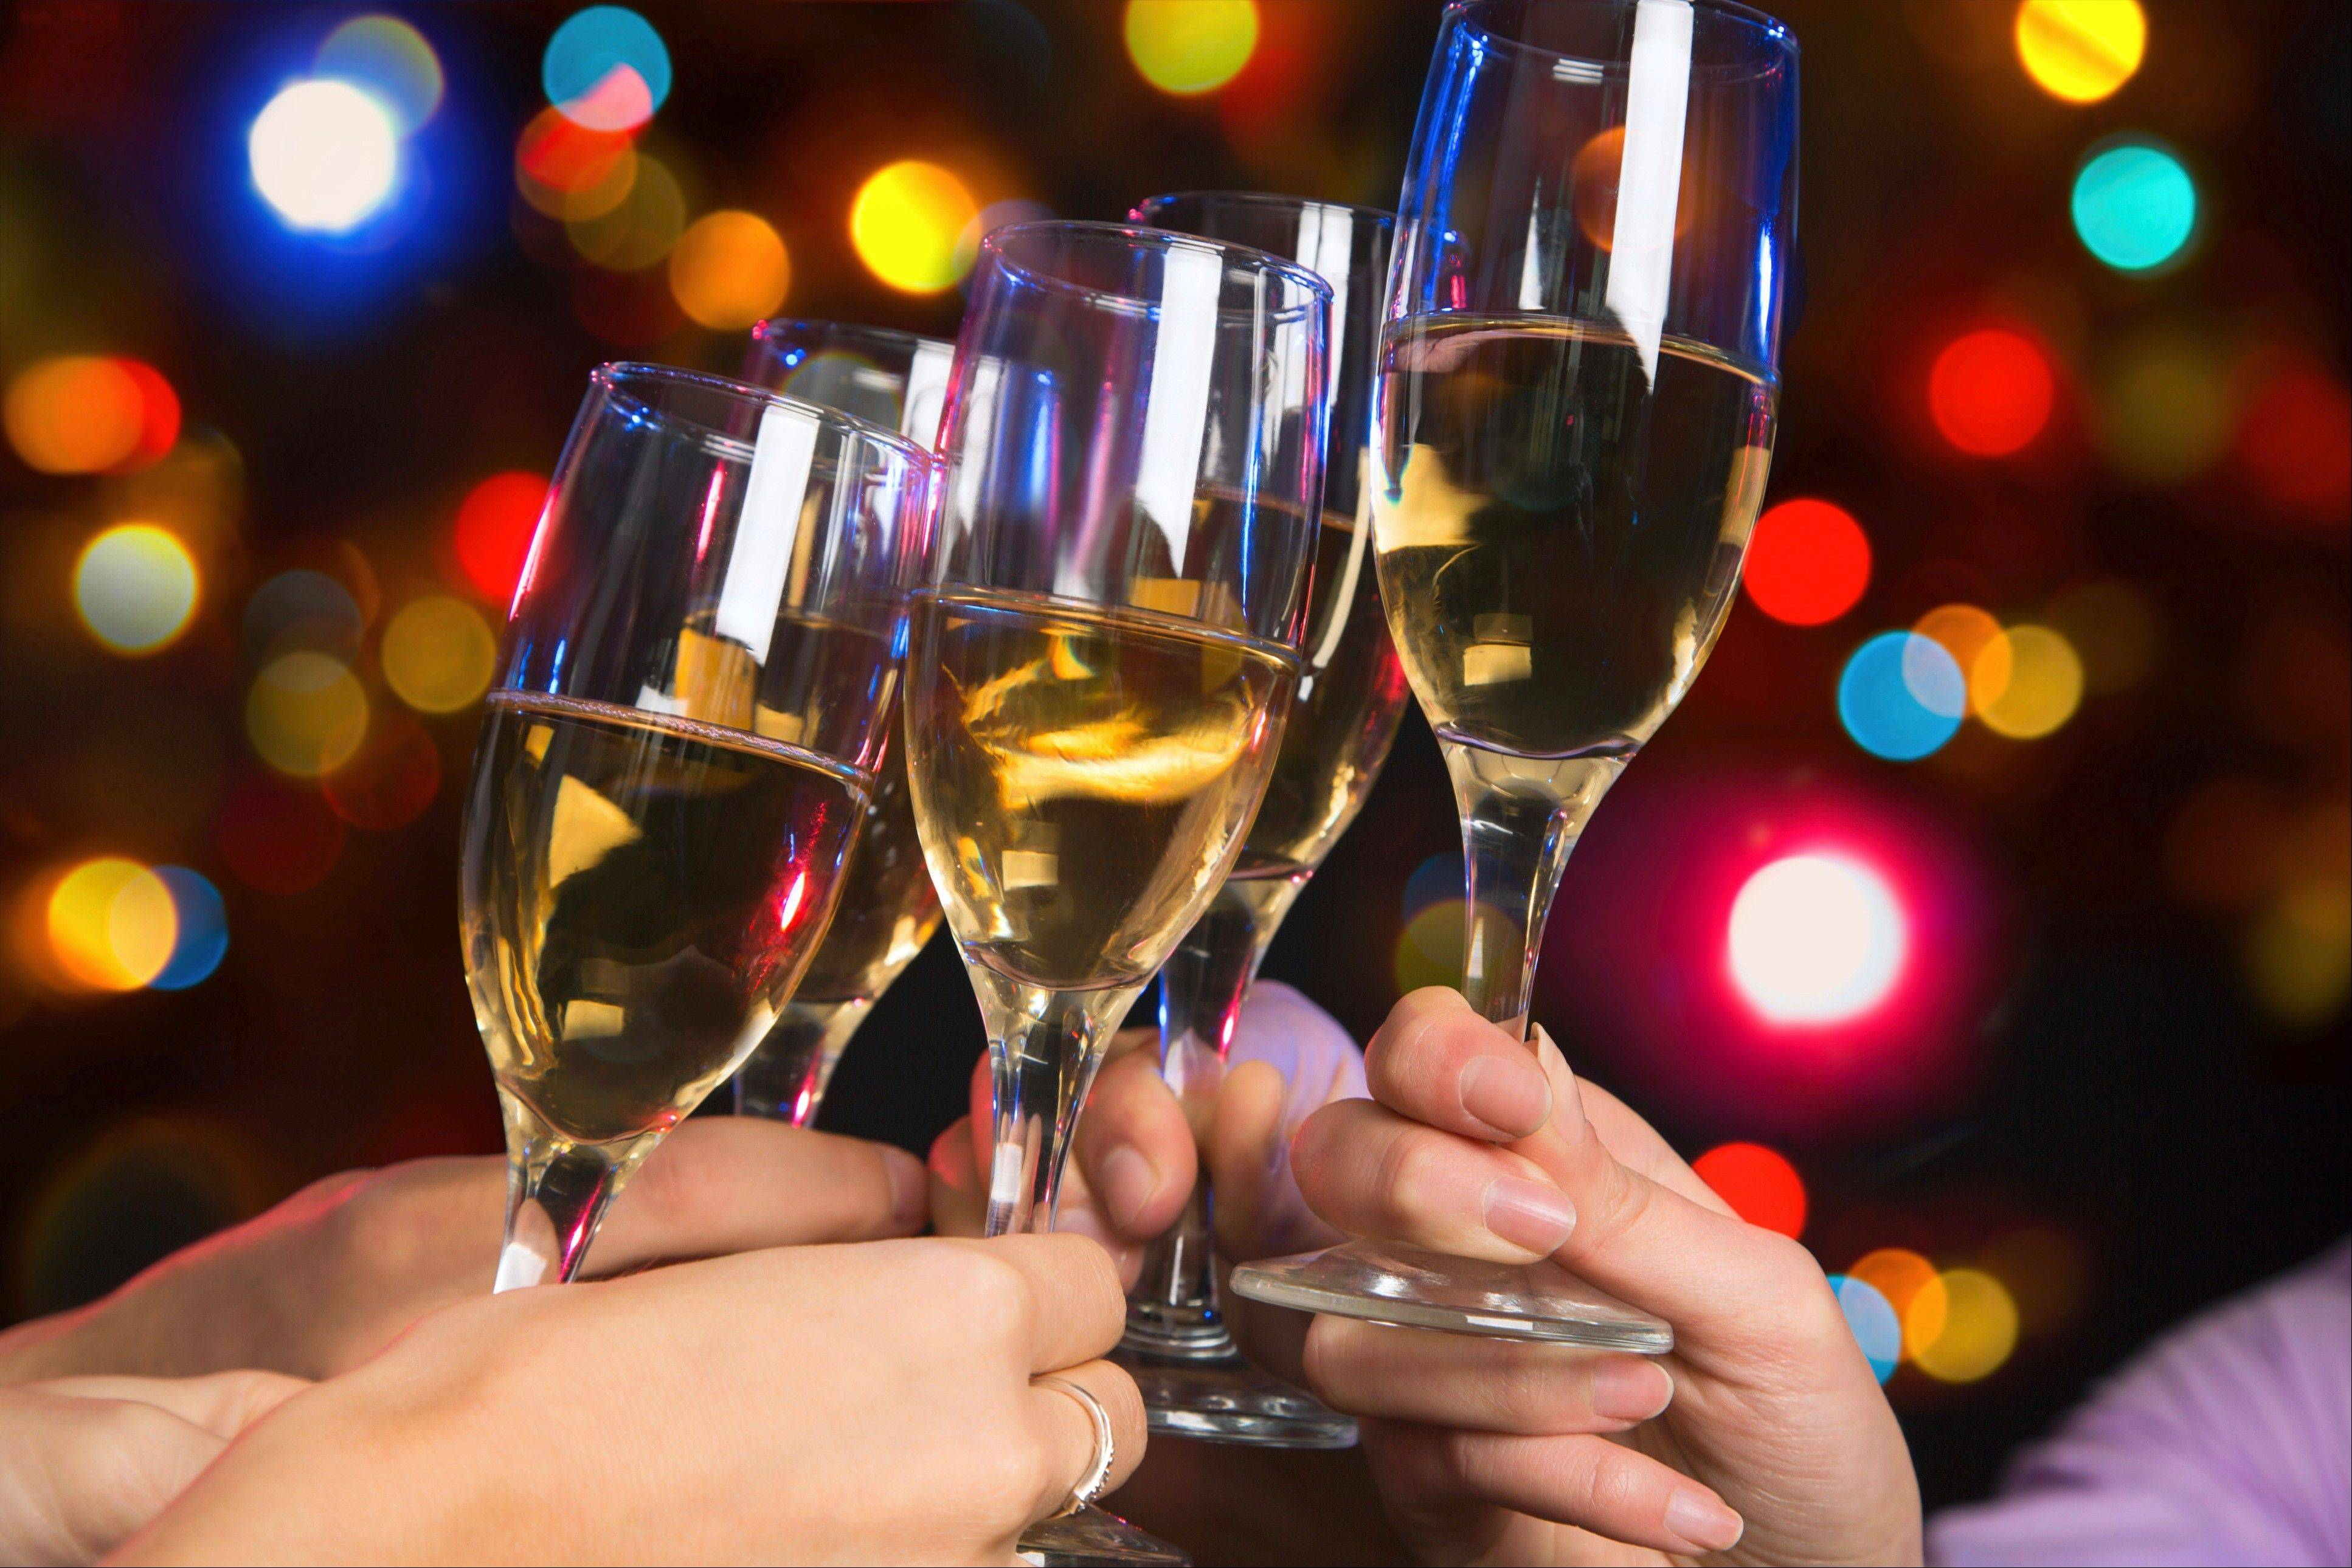 Get a group of friends together to usher in 2014 at a new suburban bar or restaurant.